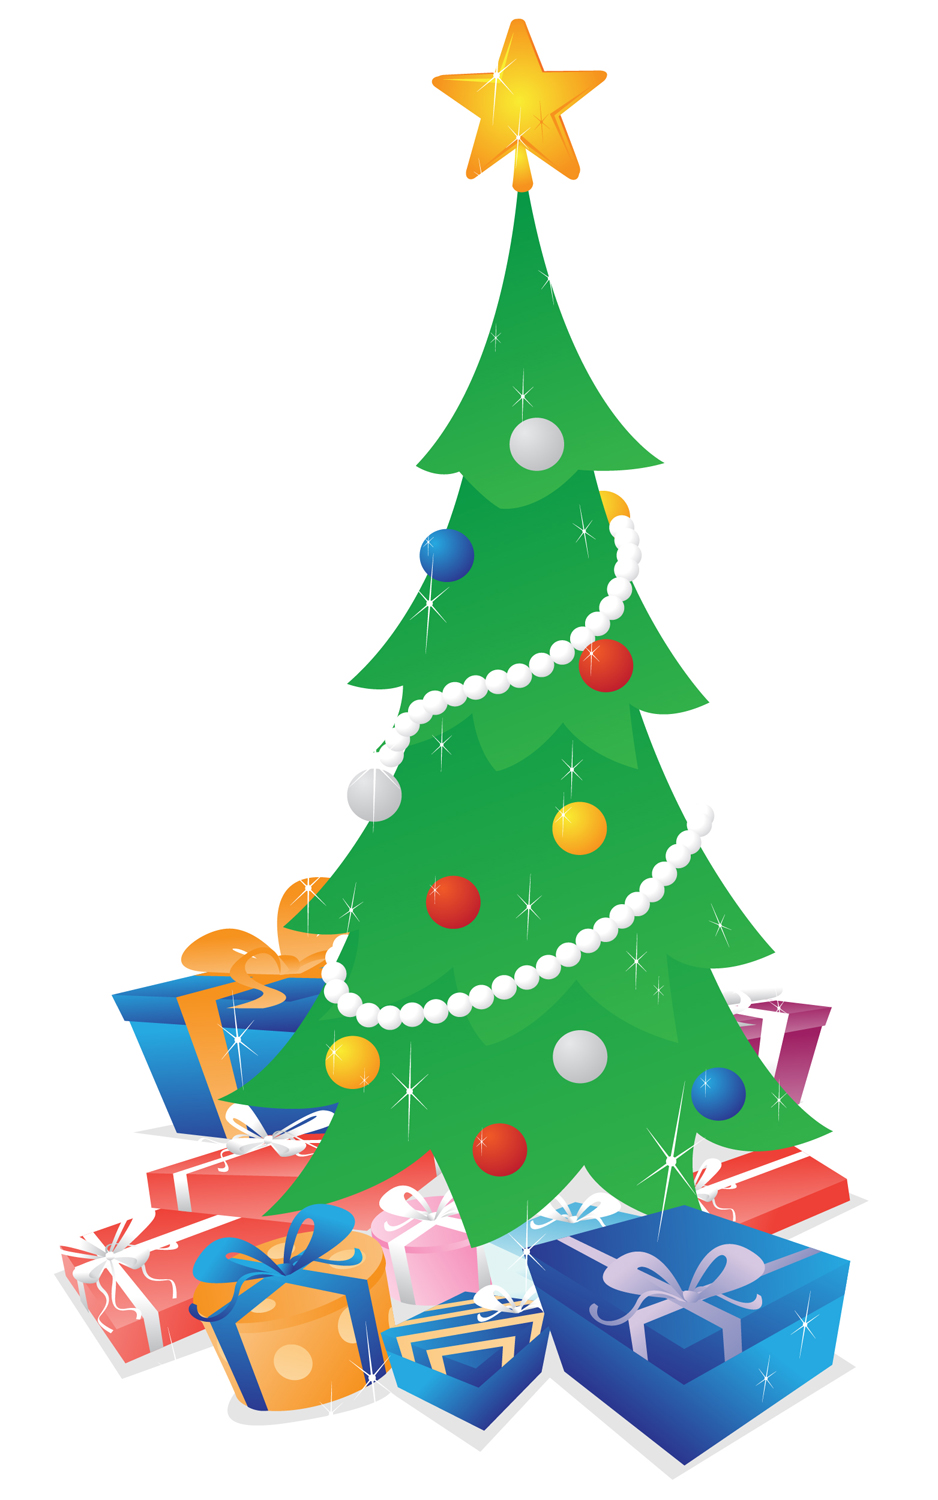 Christmas Tree With Presents Vector Illustration Of A Shimmering